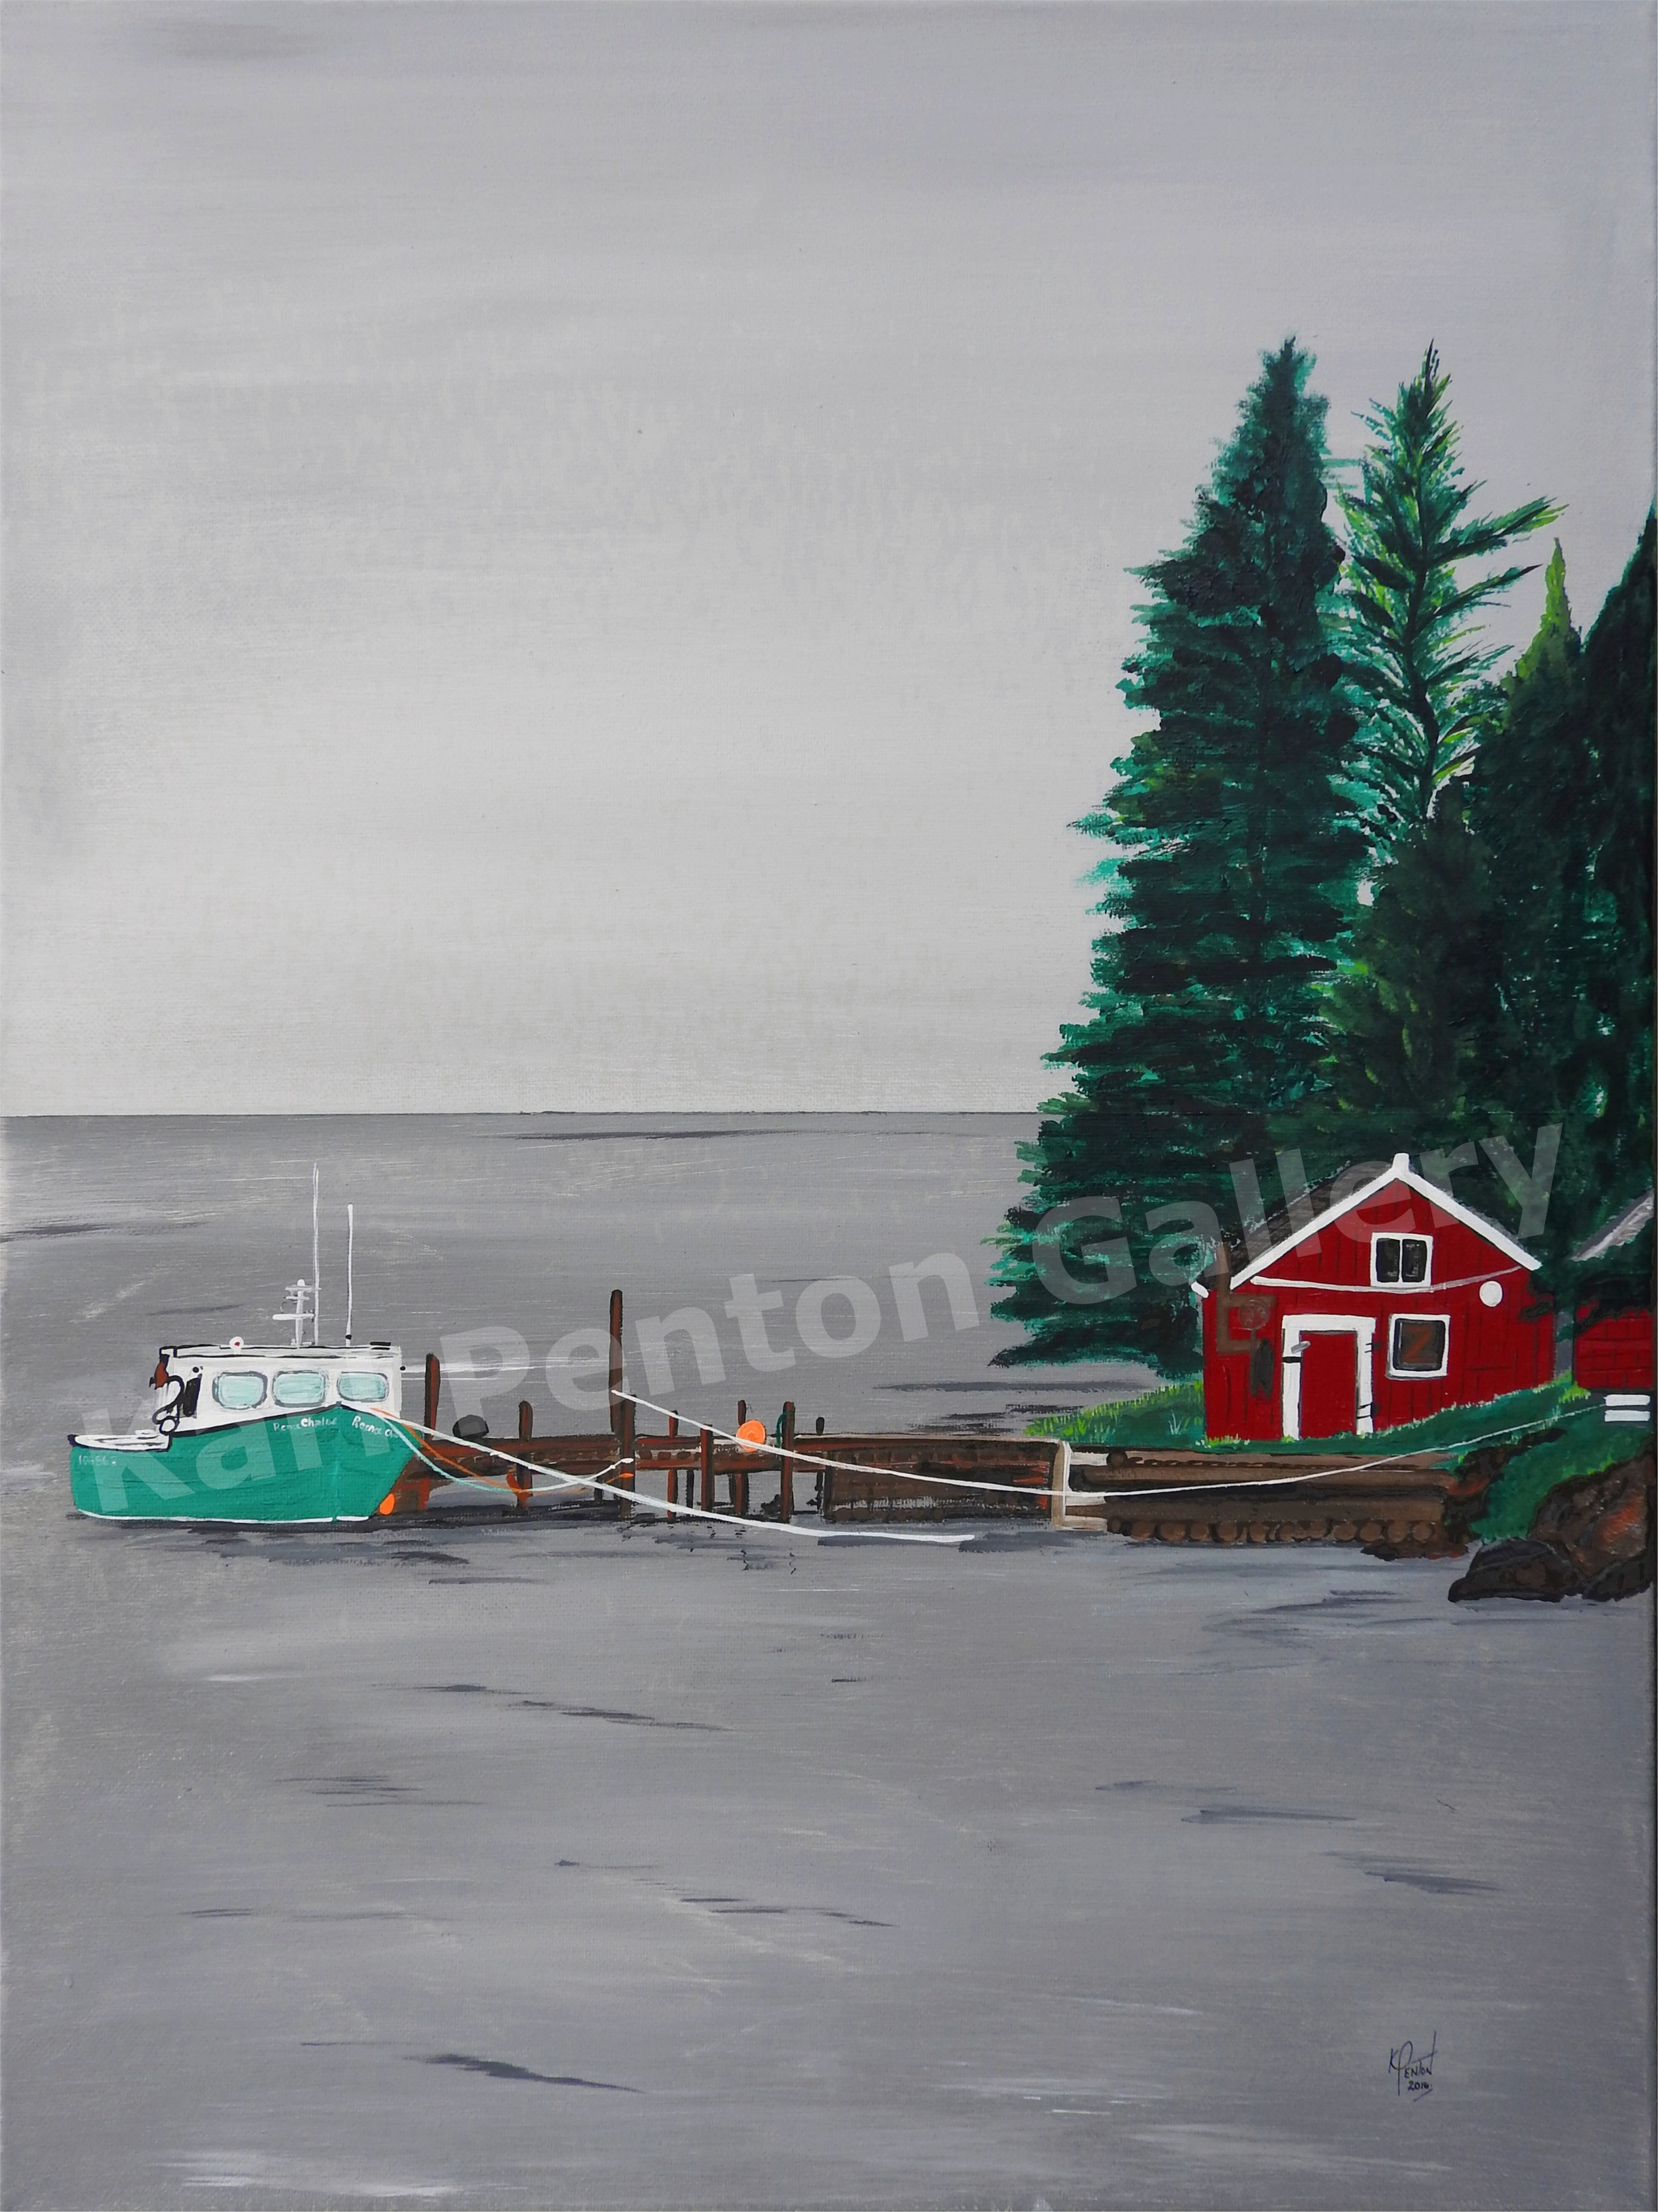 Port Dufferin - Drive past this beautiful property in Port Dufferin, Nova Scotia and you cannot help but pull over and gaze at what is before you.The second Karl saw this, he pictured a painting.(Original In Private Collection)